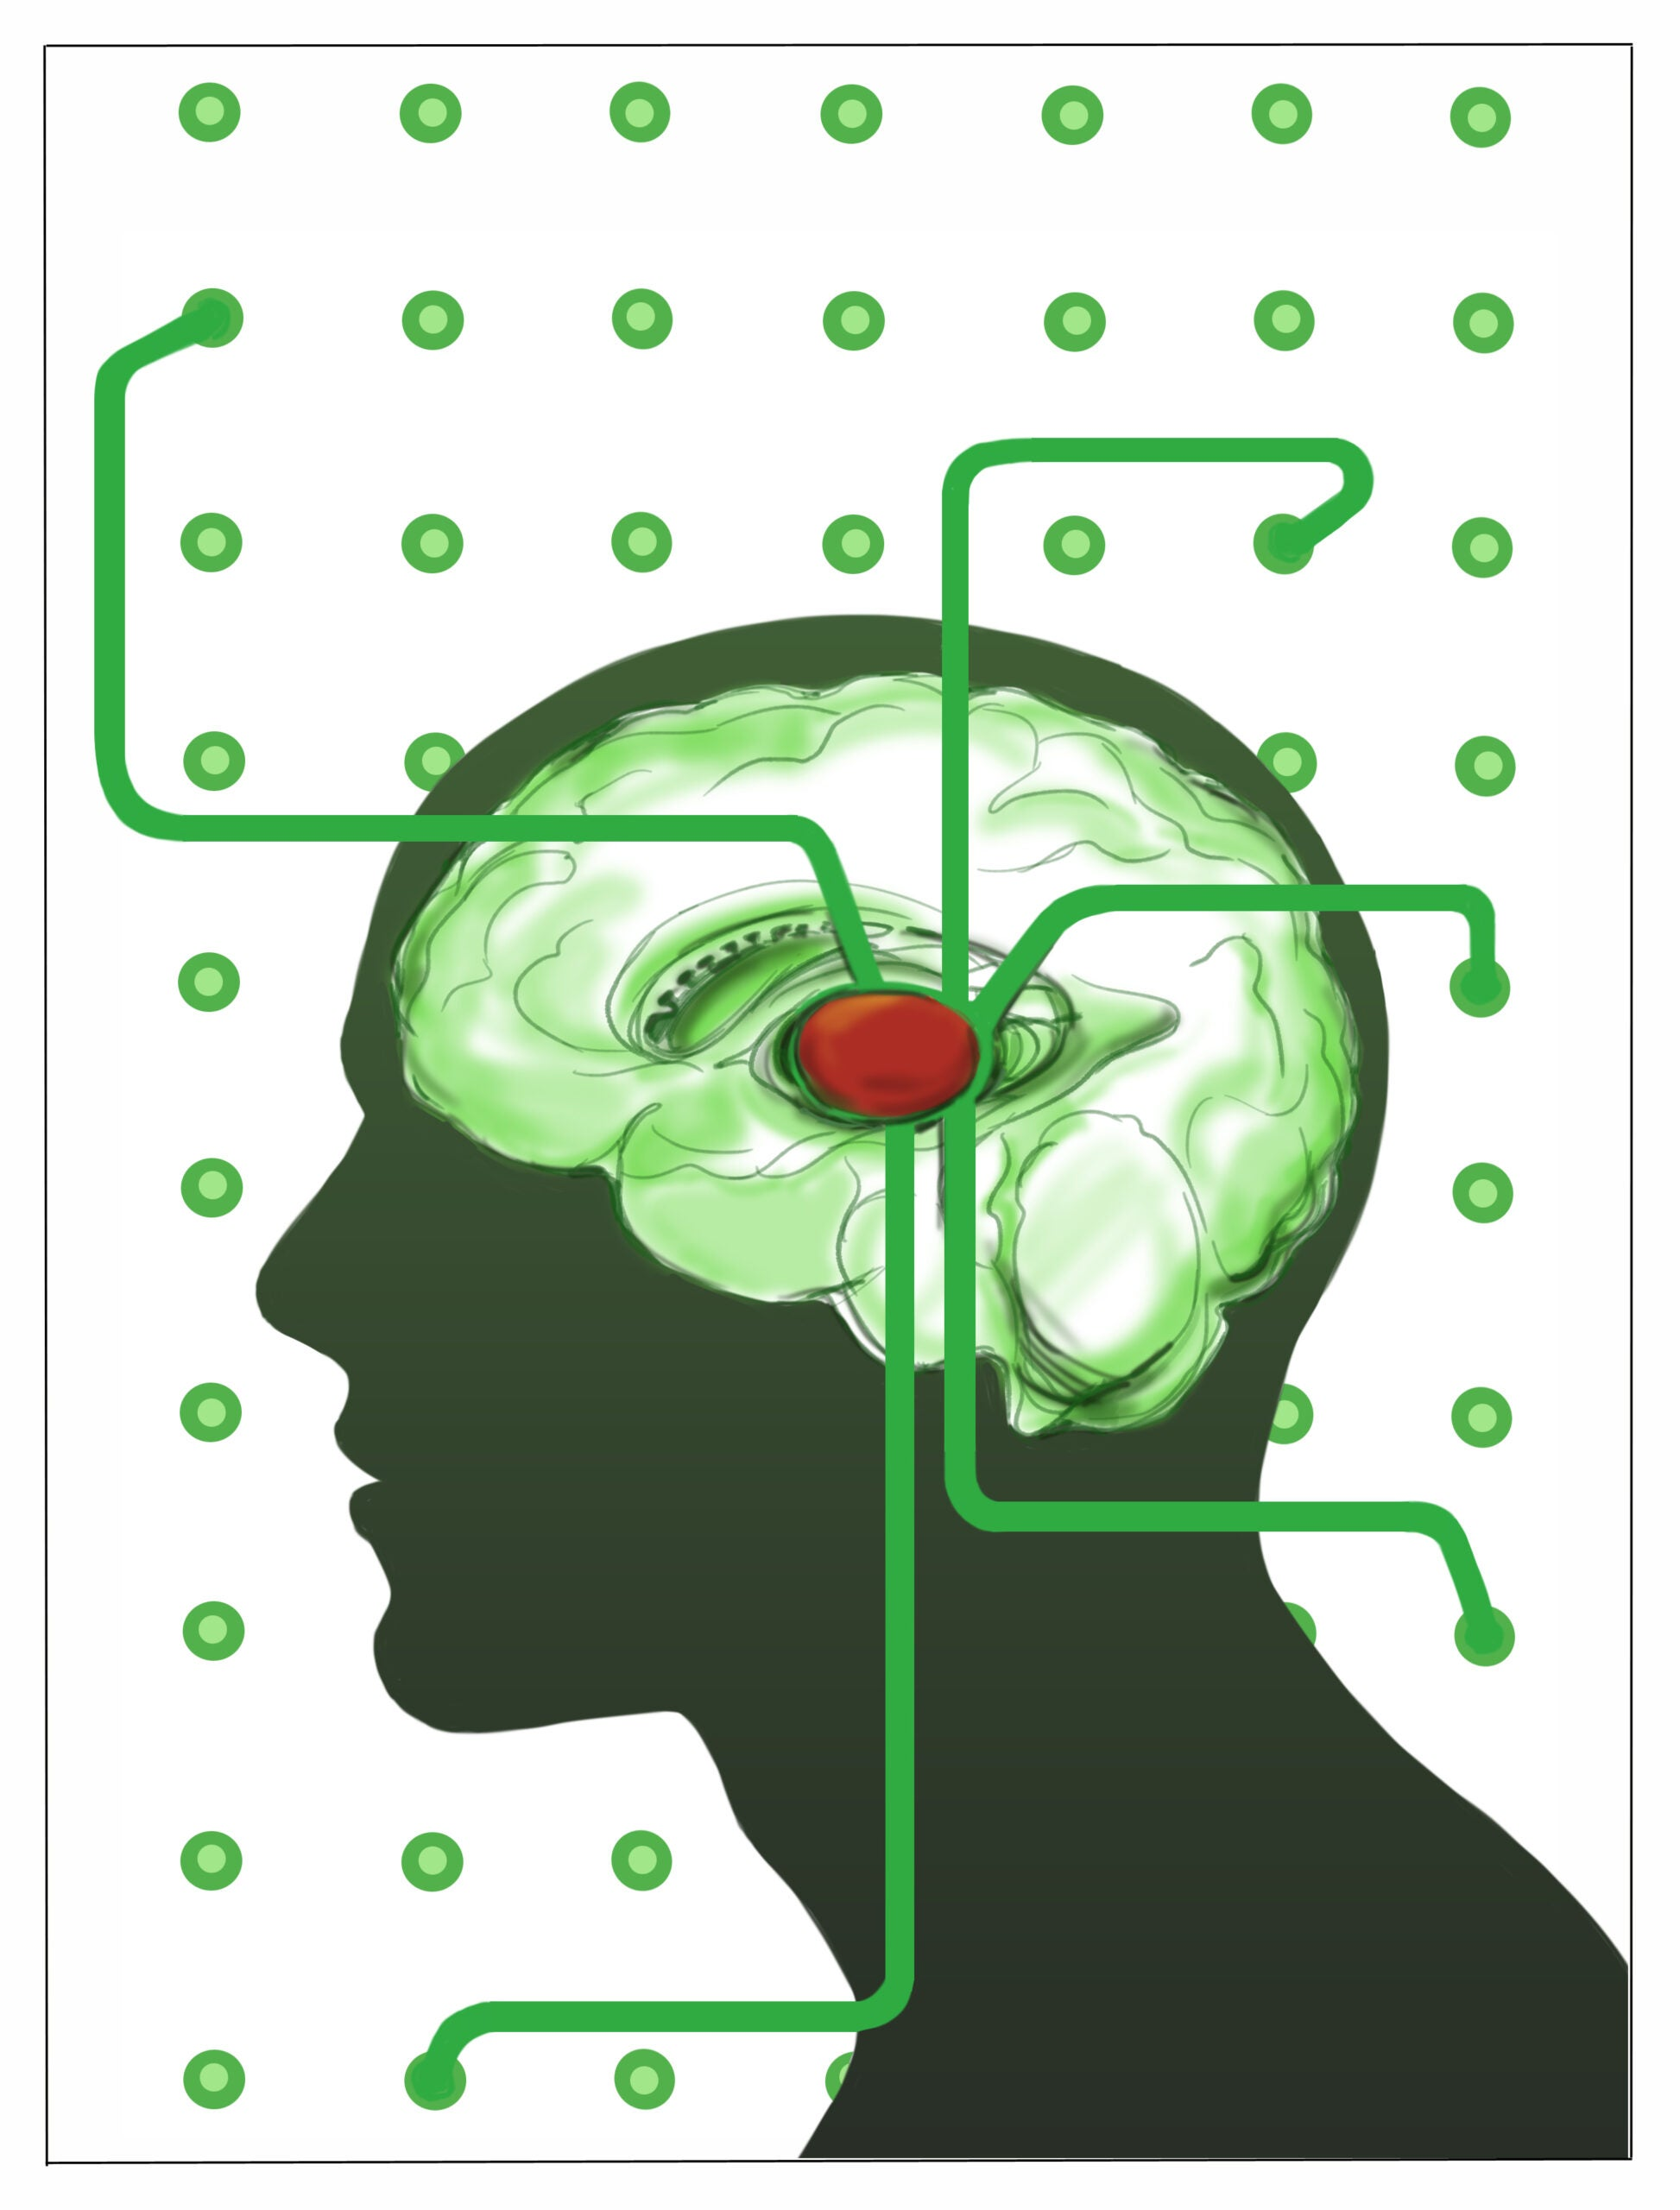 Study Shows How Our Brains Are Able To Multitask